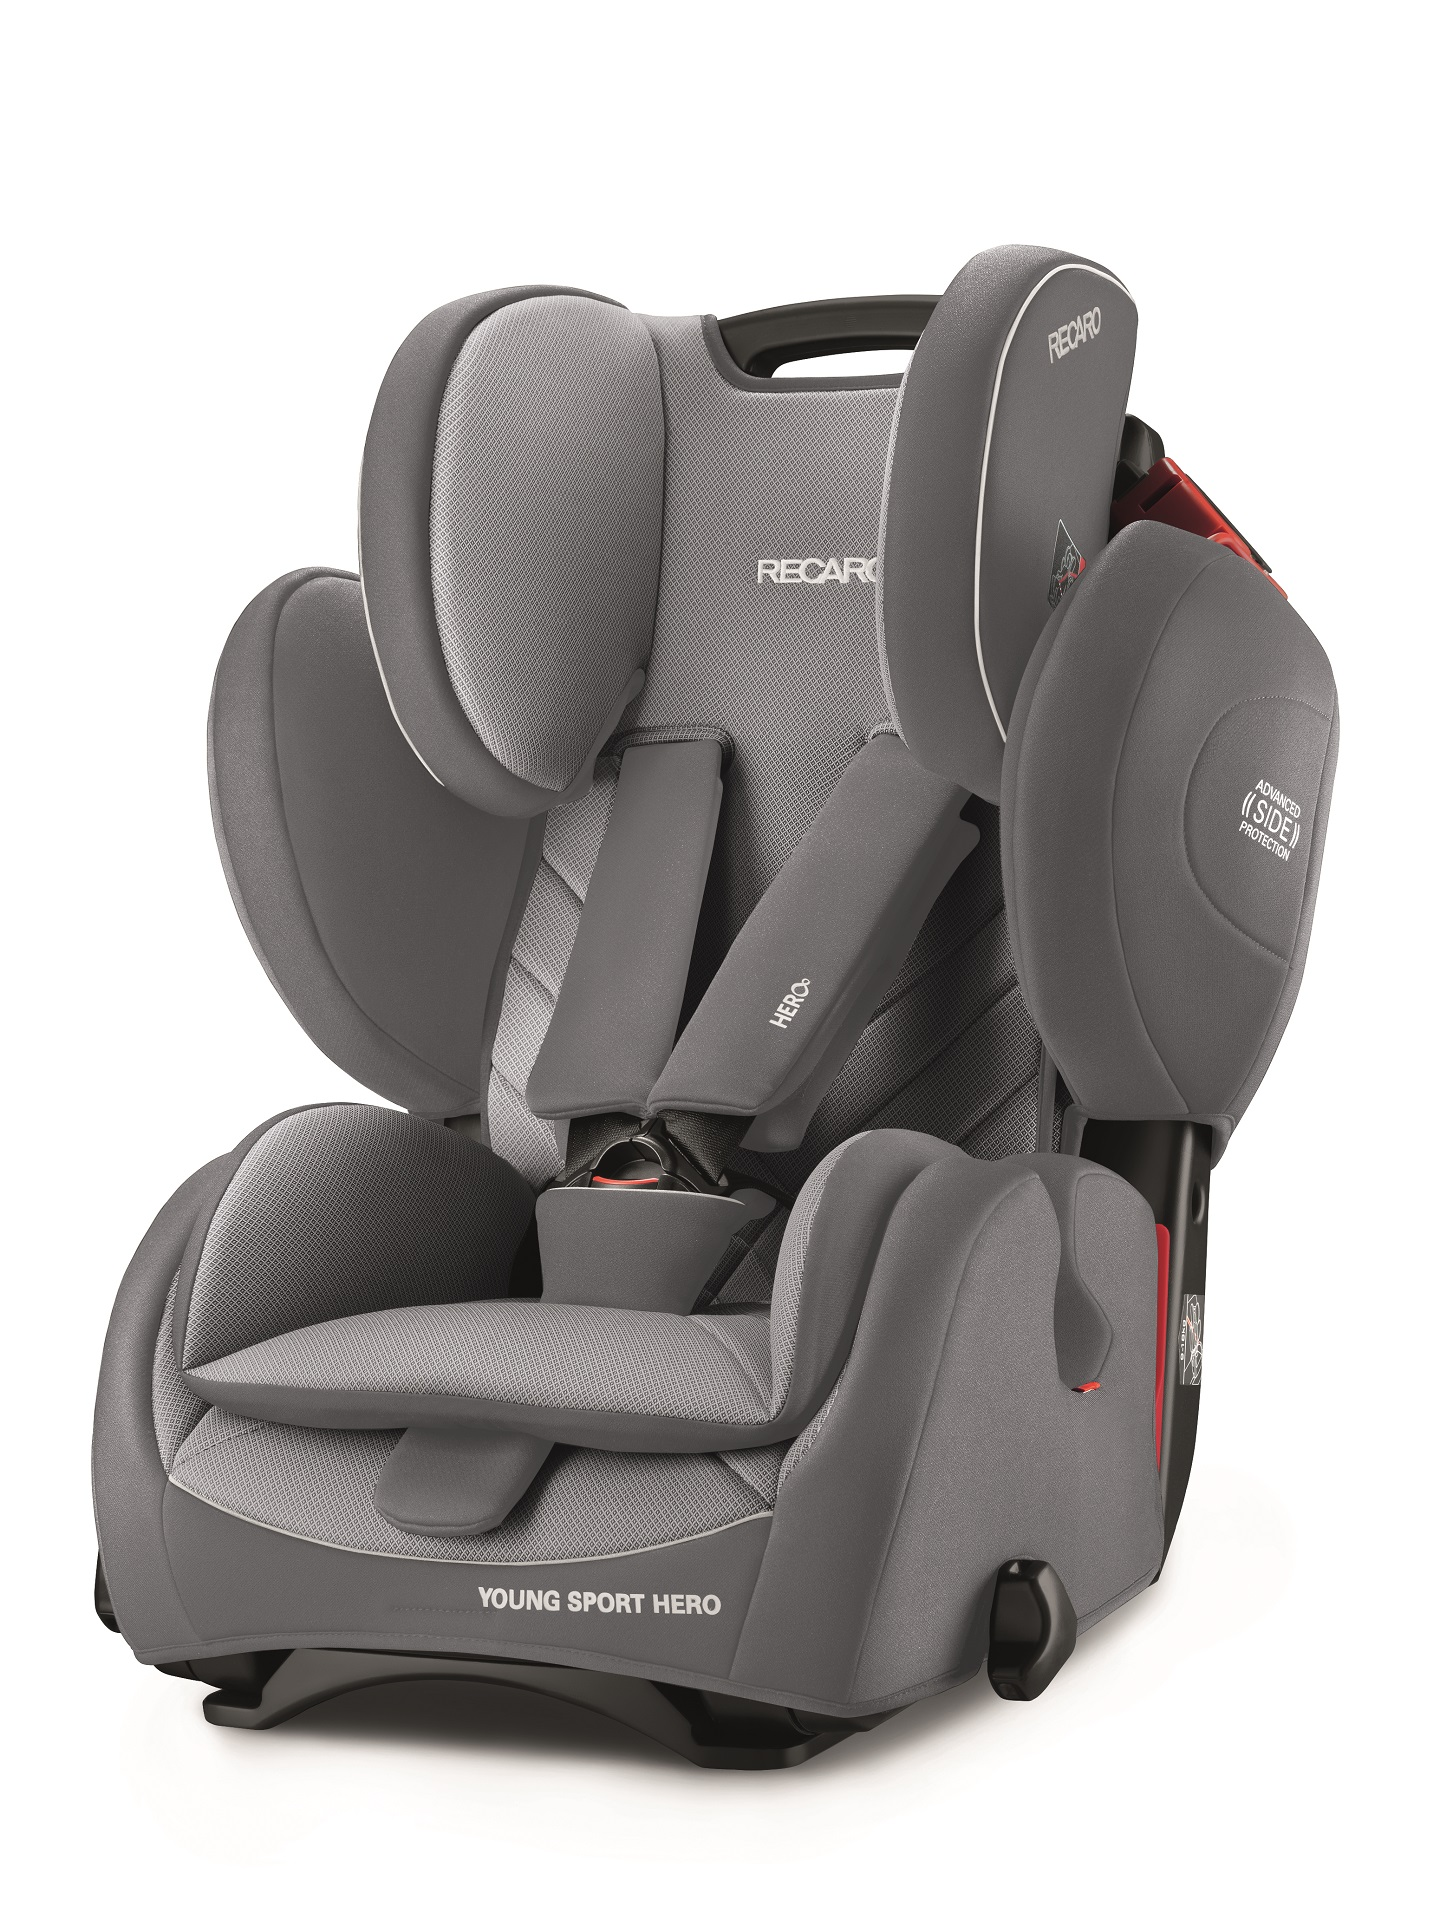 recaro child car seat young sport hero 2019 aluminium grey buy at kidsroom car seats. Black Bedroom Furniture Sets. Home Design Ideas